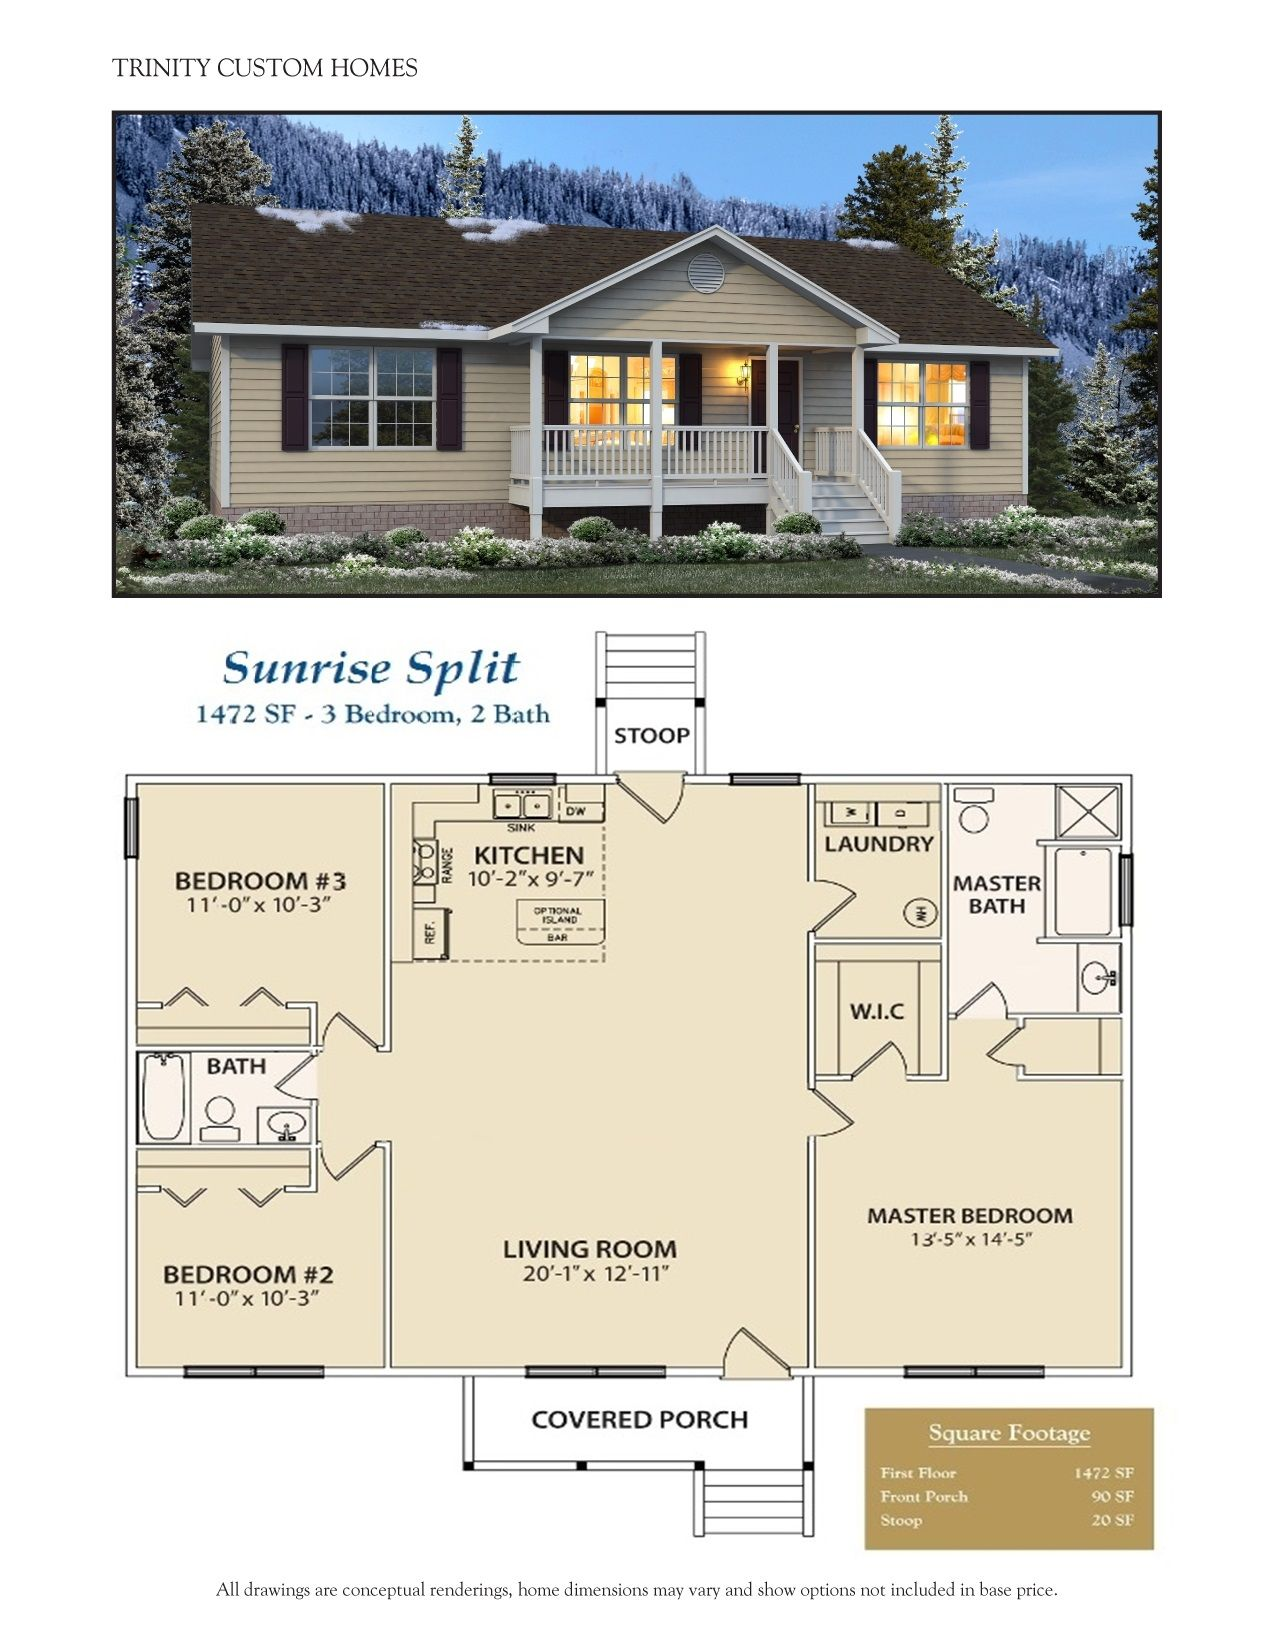 Take A Look At All Of Trinity Custom Homes Georgia Floor Plans Here We Have A Lot To Offer So Contact Us T Dream House Plans House Blueprints New House Plans